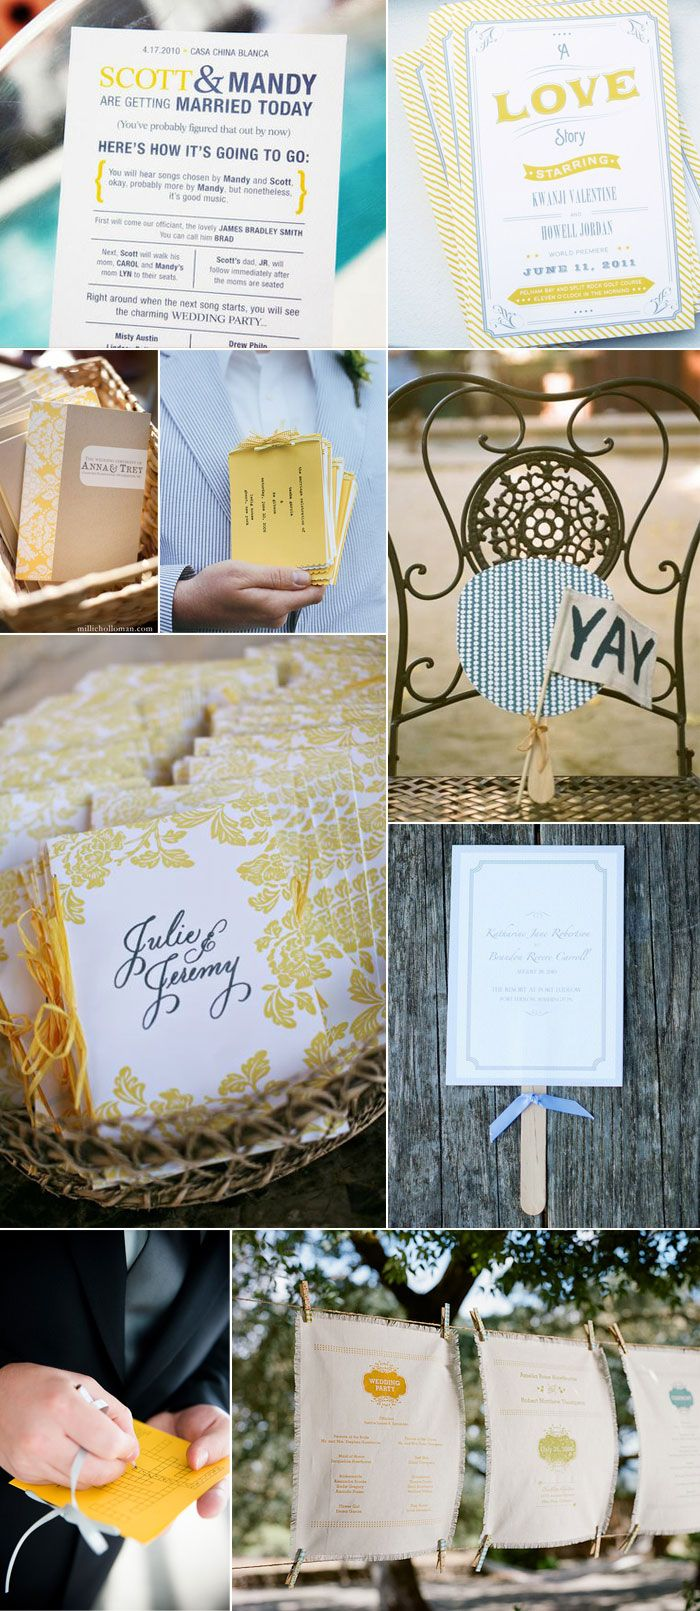 Grey/yellow/blue- grey dresses with yellow and blue flowers wrapped in burlap